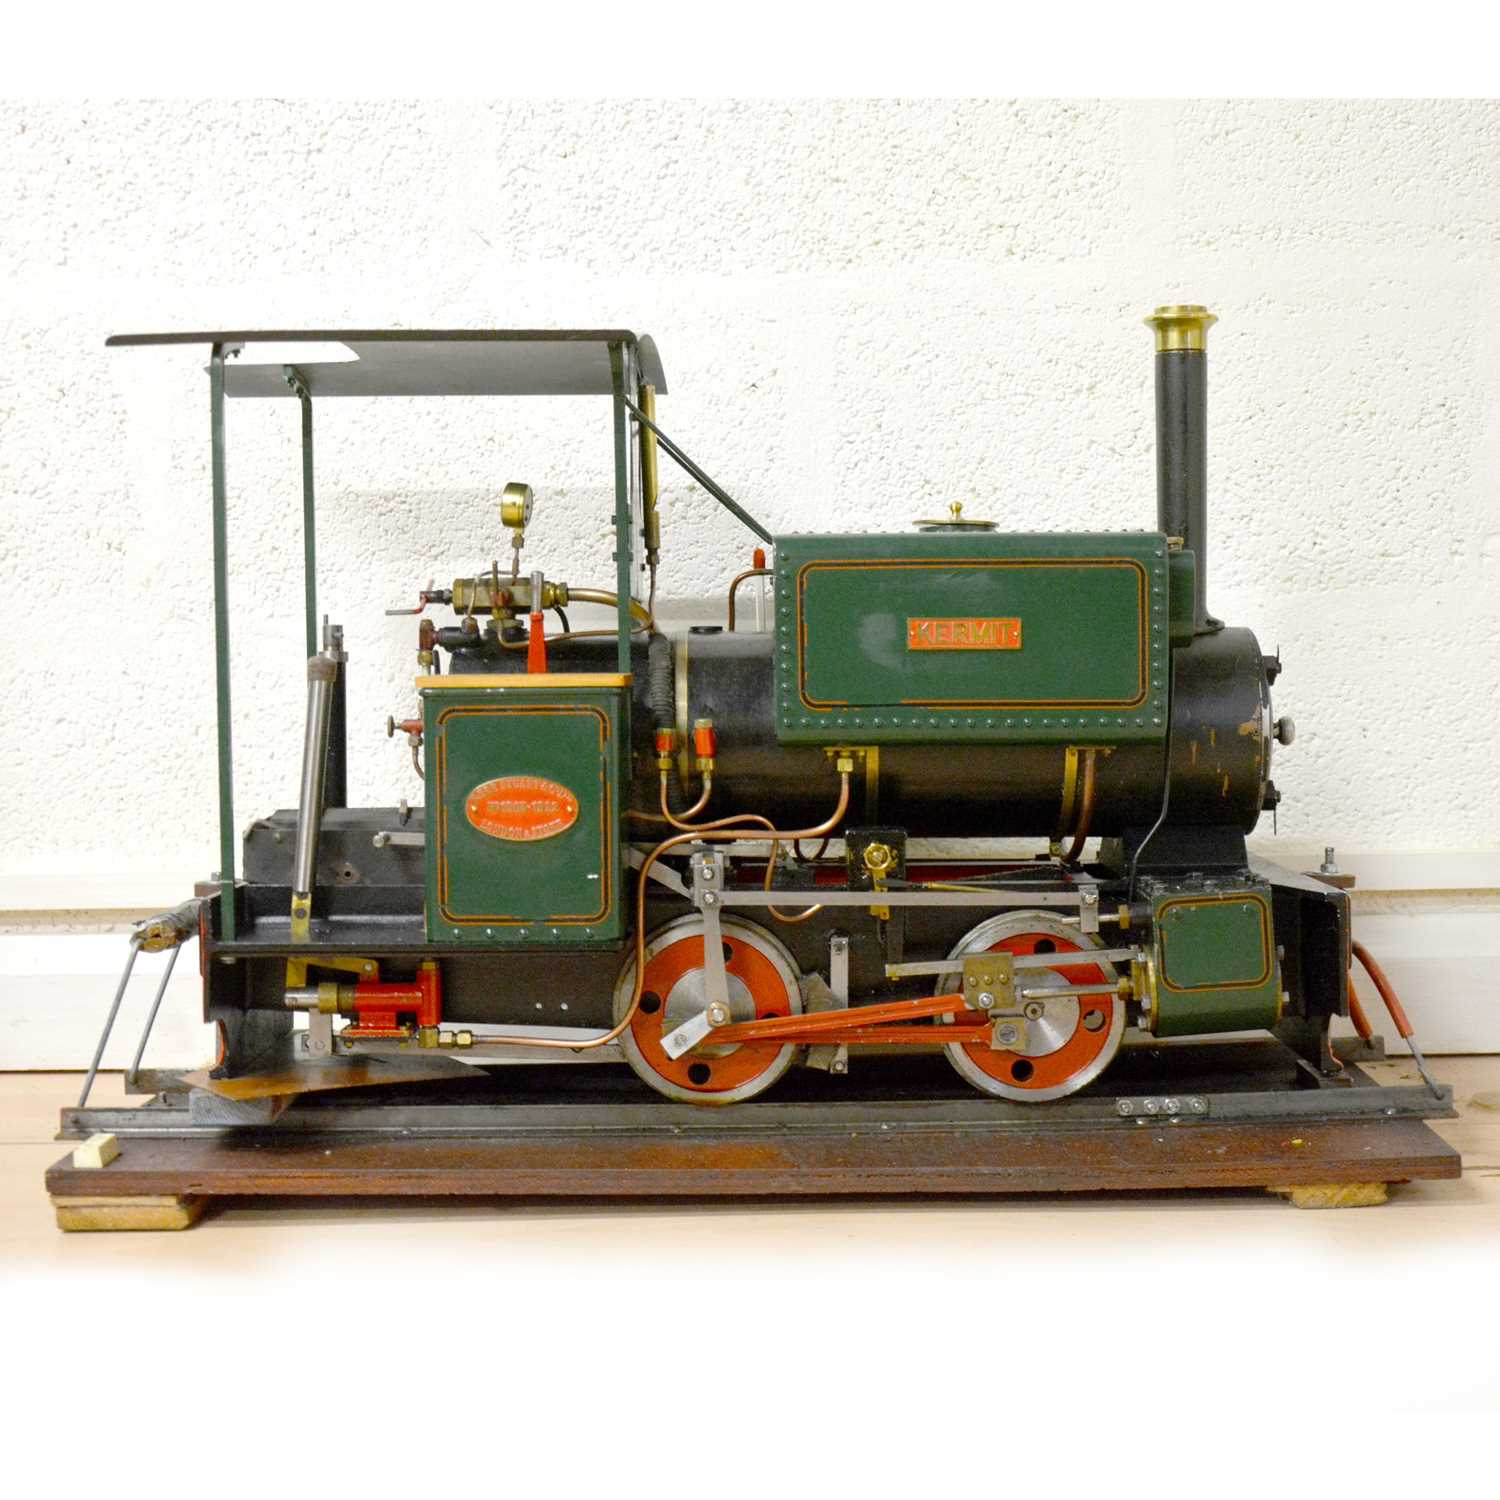 122 - Maxitrak live steam 5inch gauge Kerr Stuart Wren design locomotive, 0-4-2, in carry case.